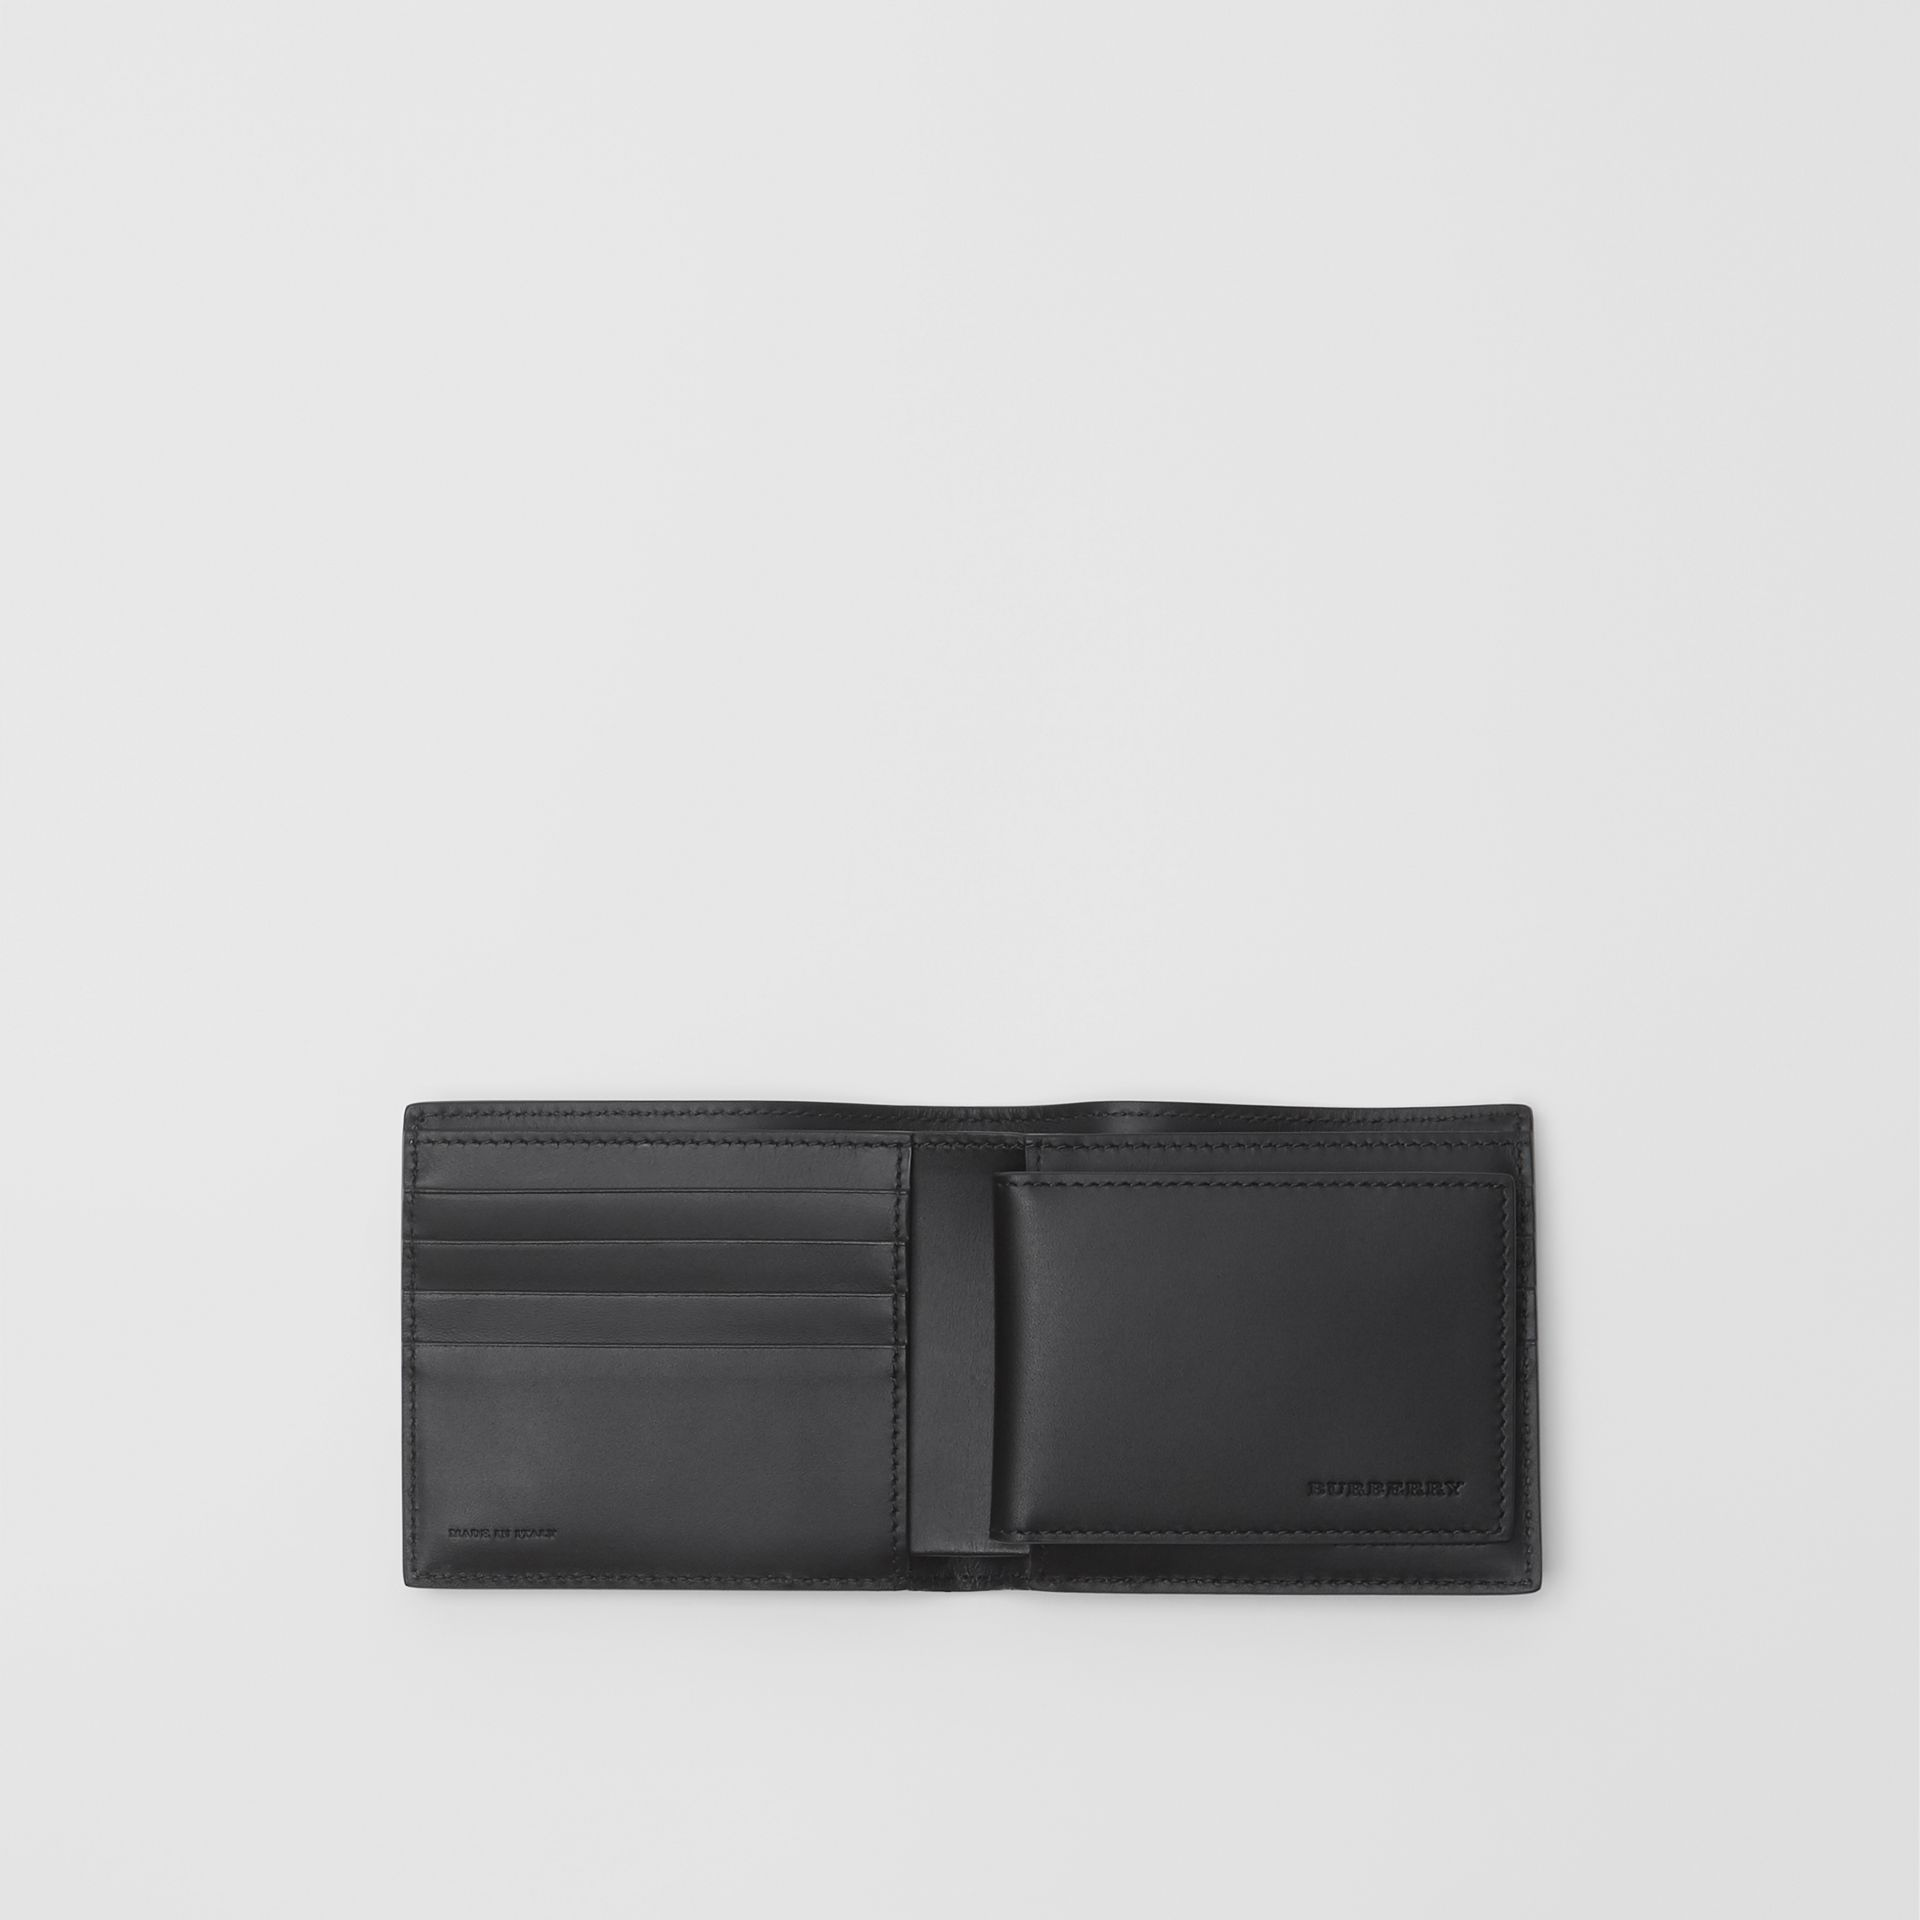 London Leather Bifold Wallet with ID Card Case in Navy - Men | Burberry United Kingdom - gallery image 2